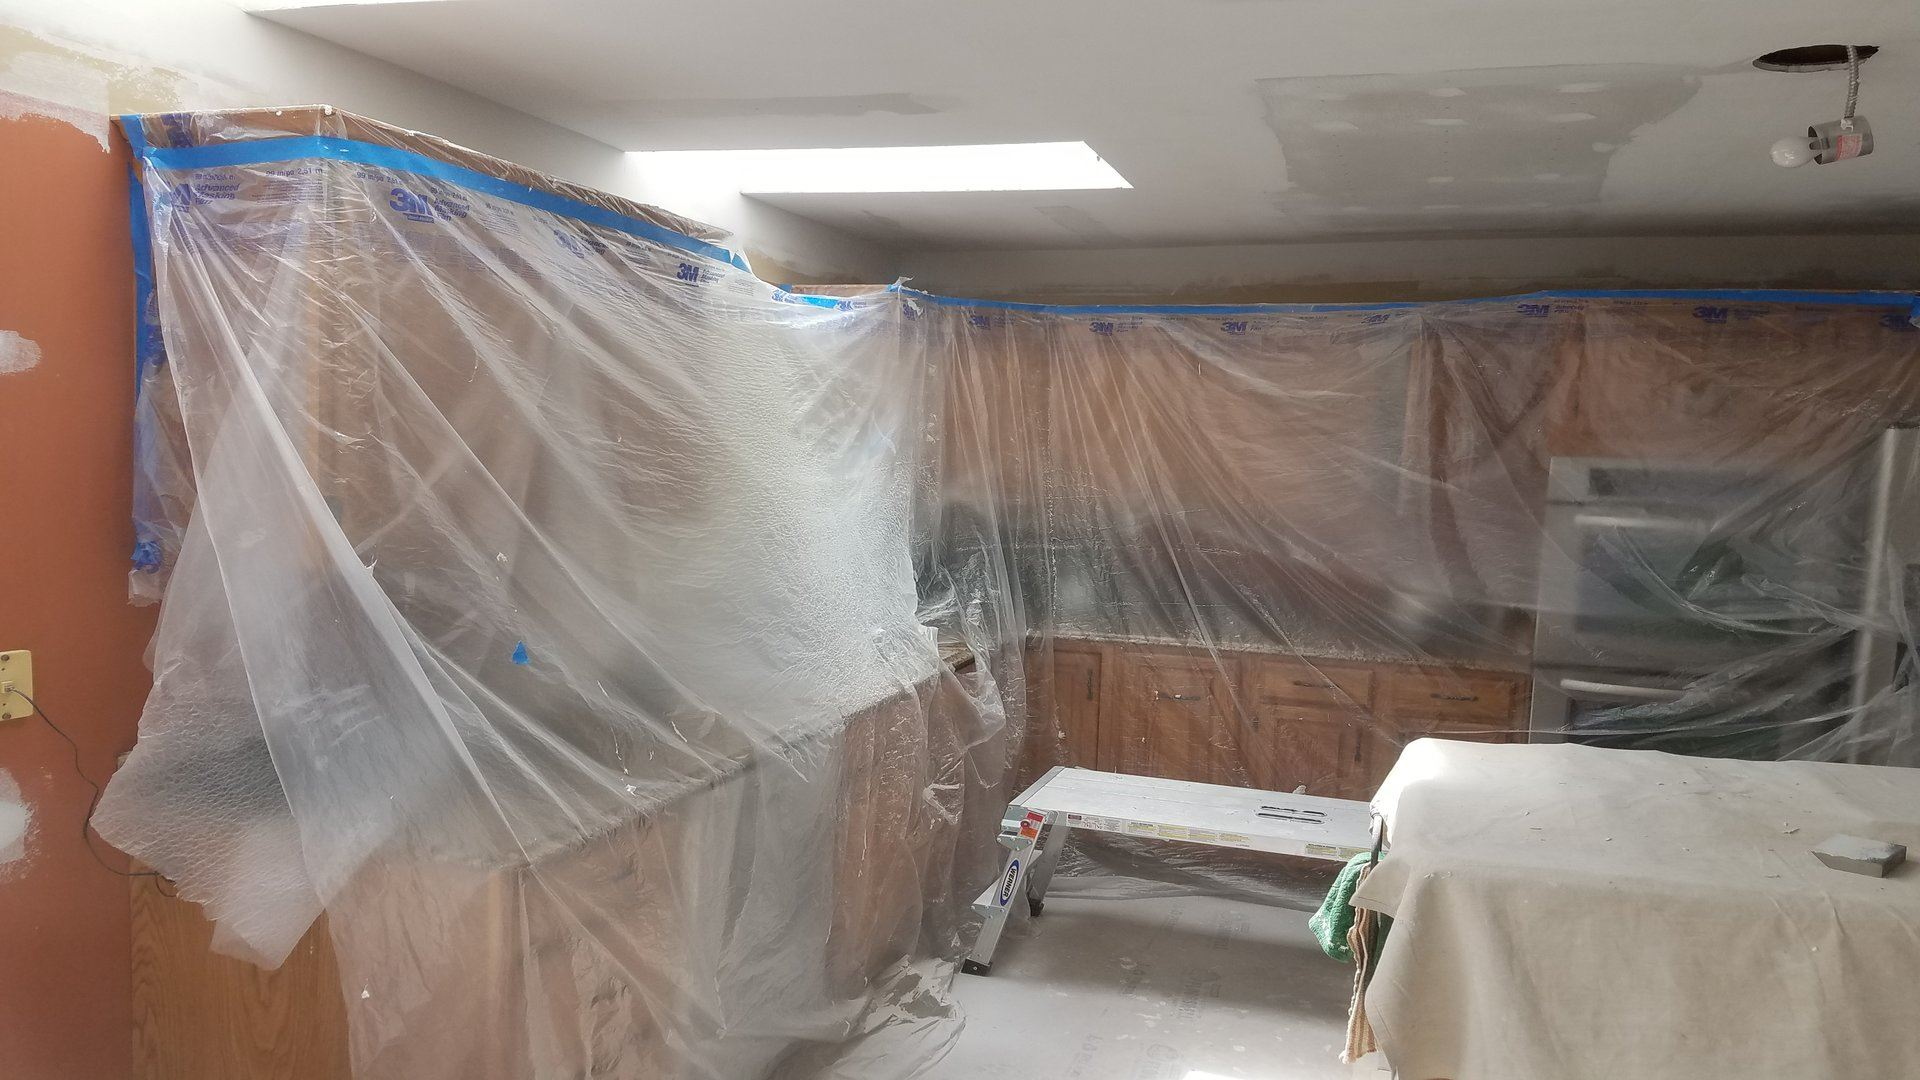 Cabinets covered in protective covering